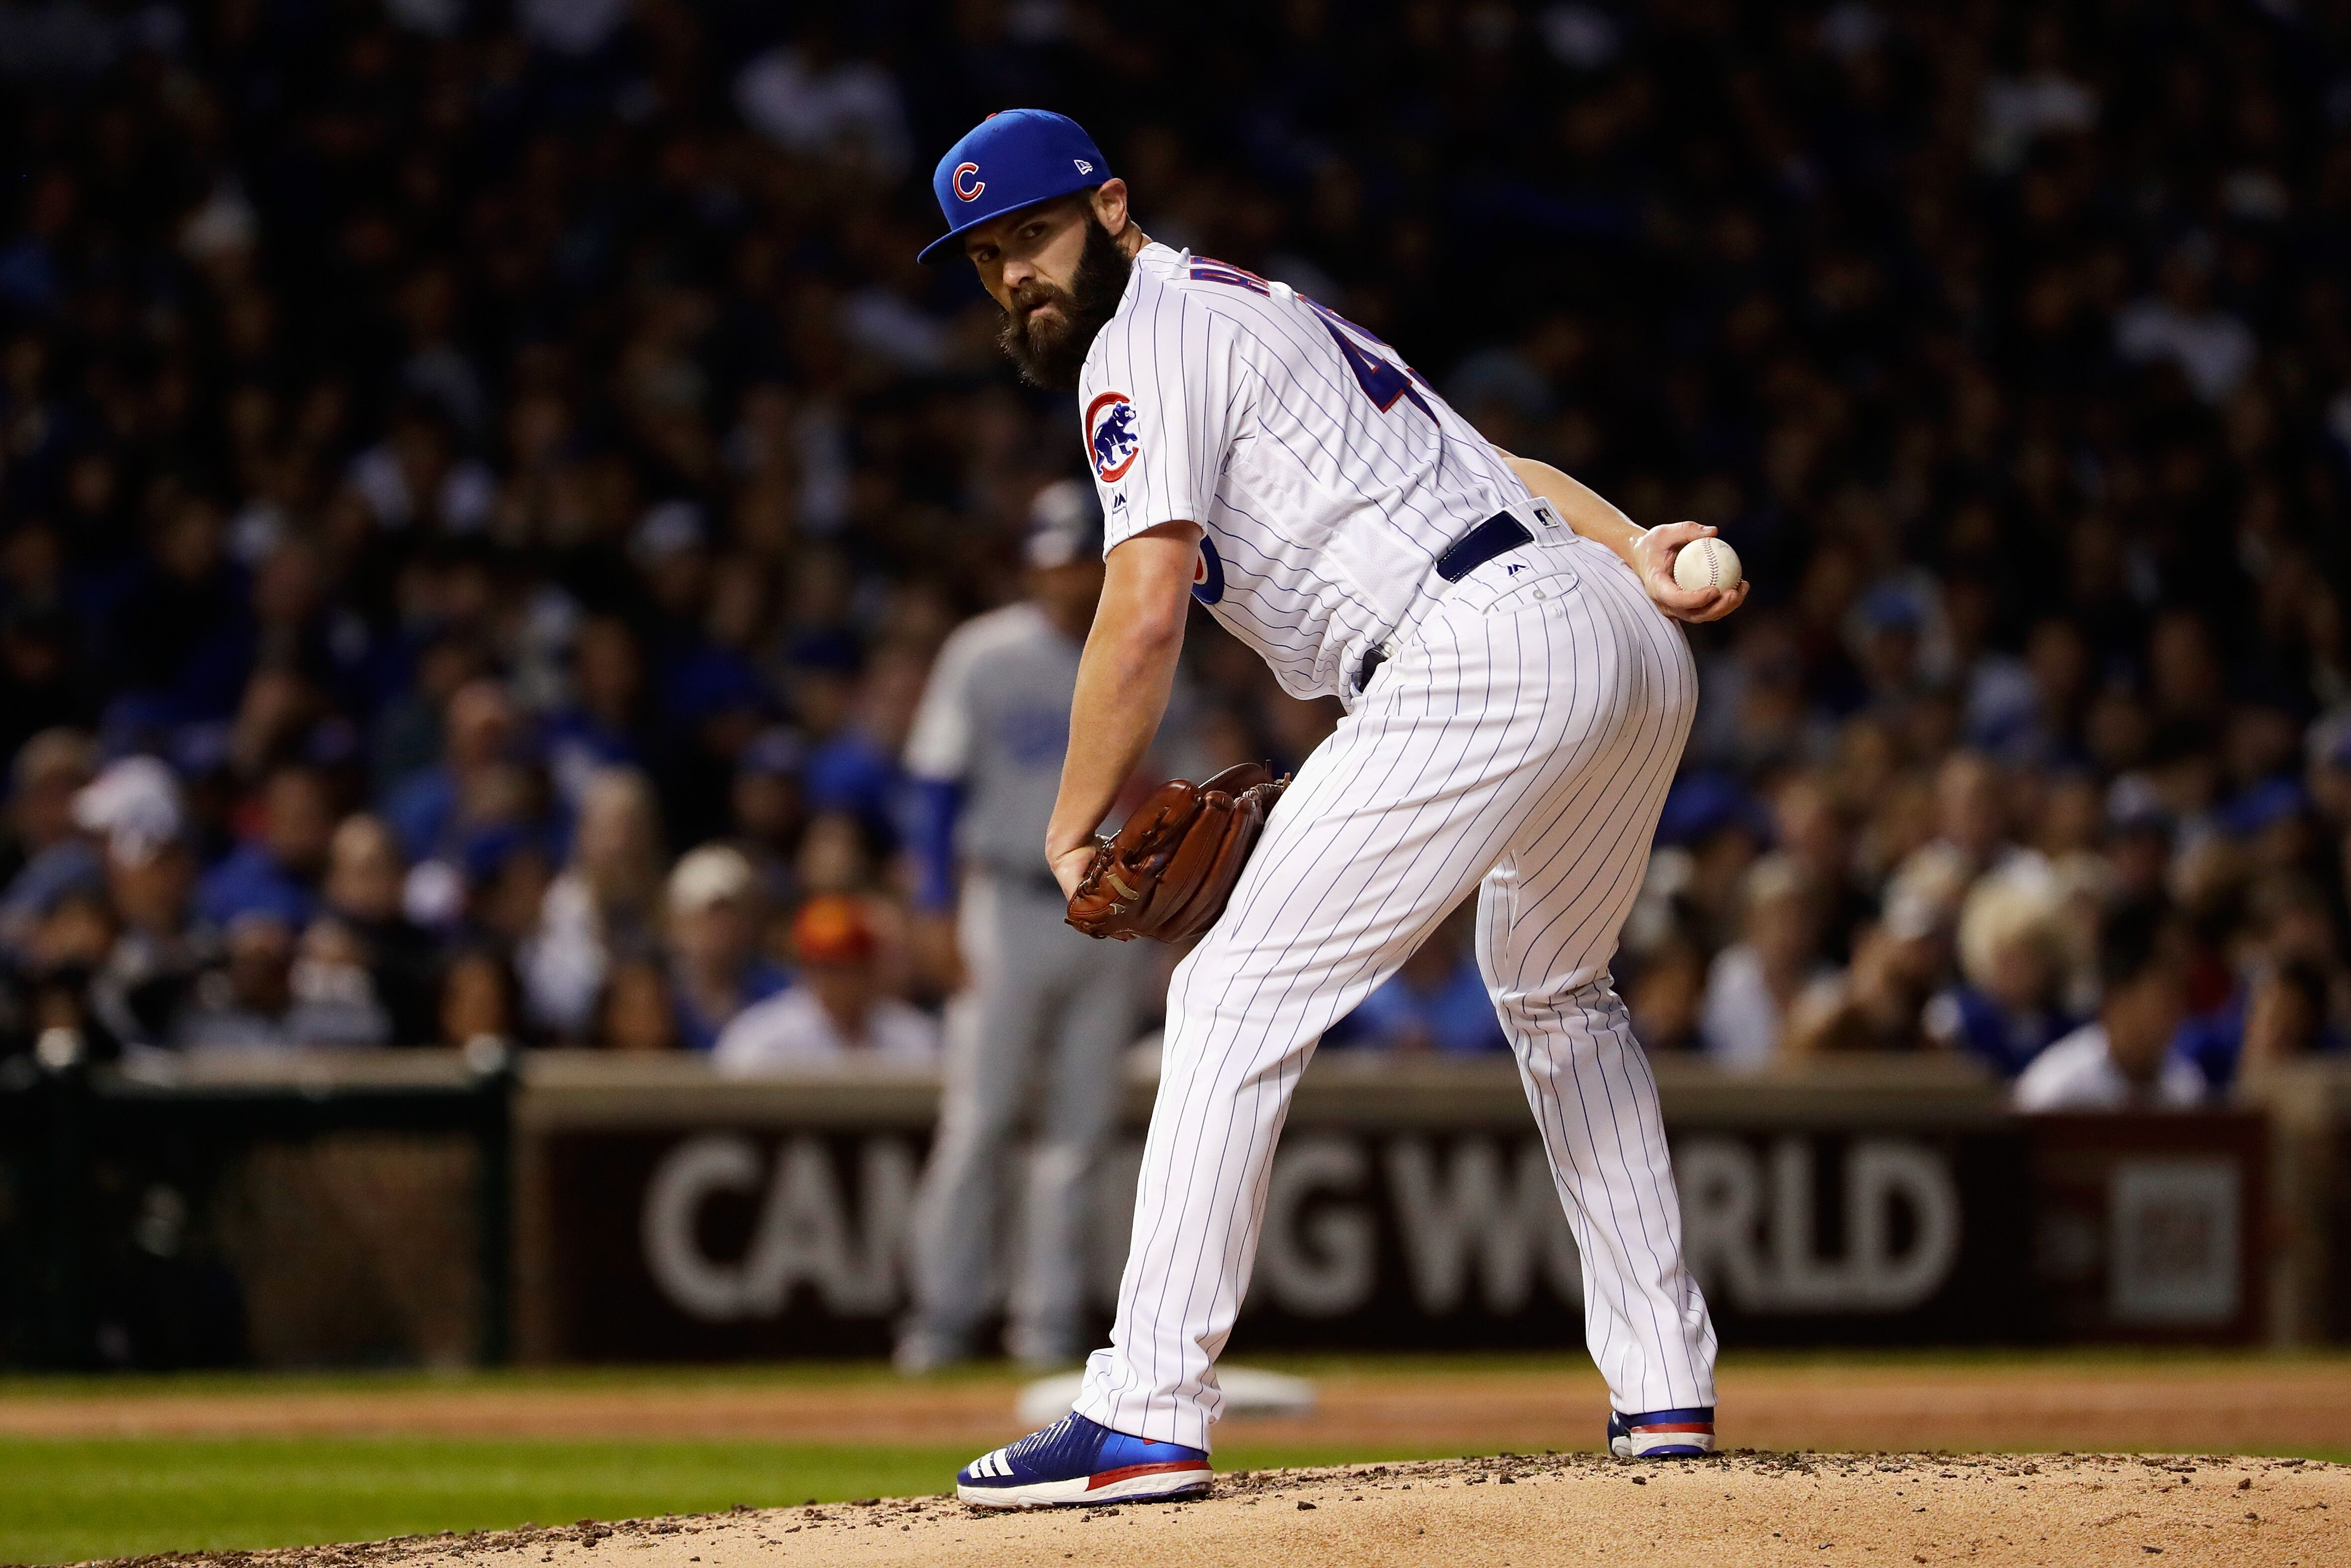 862921578-league-championship-series-los-angeles-dodgers-v-chicago-cubs-game-four.jpg